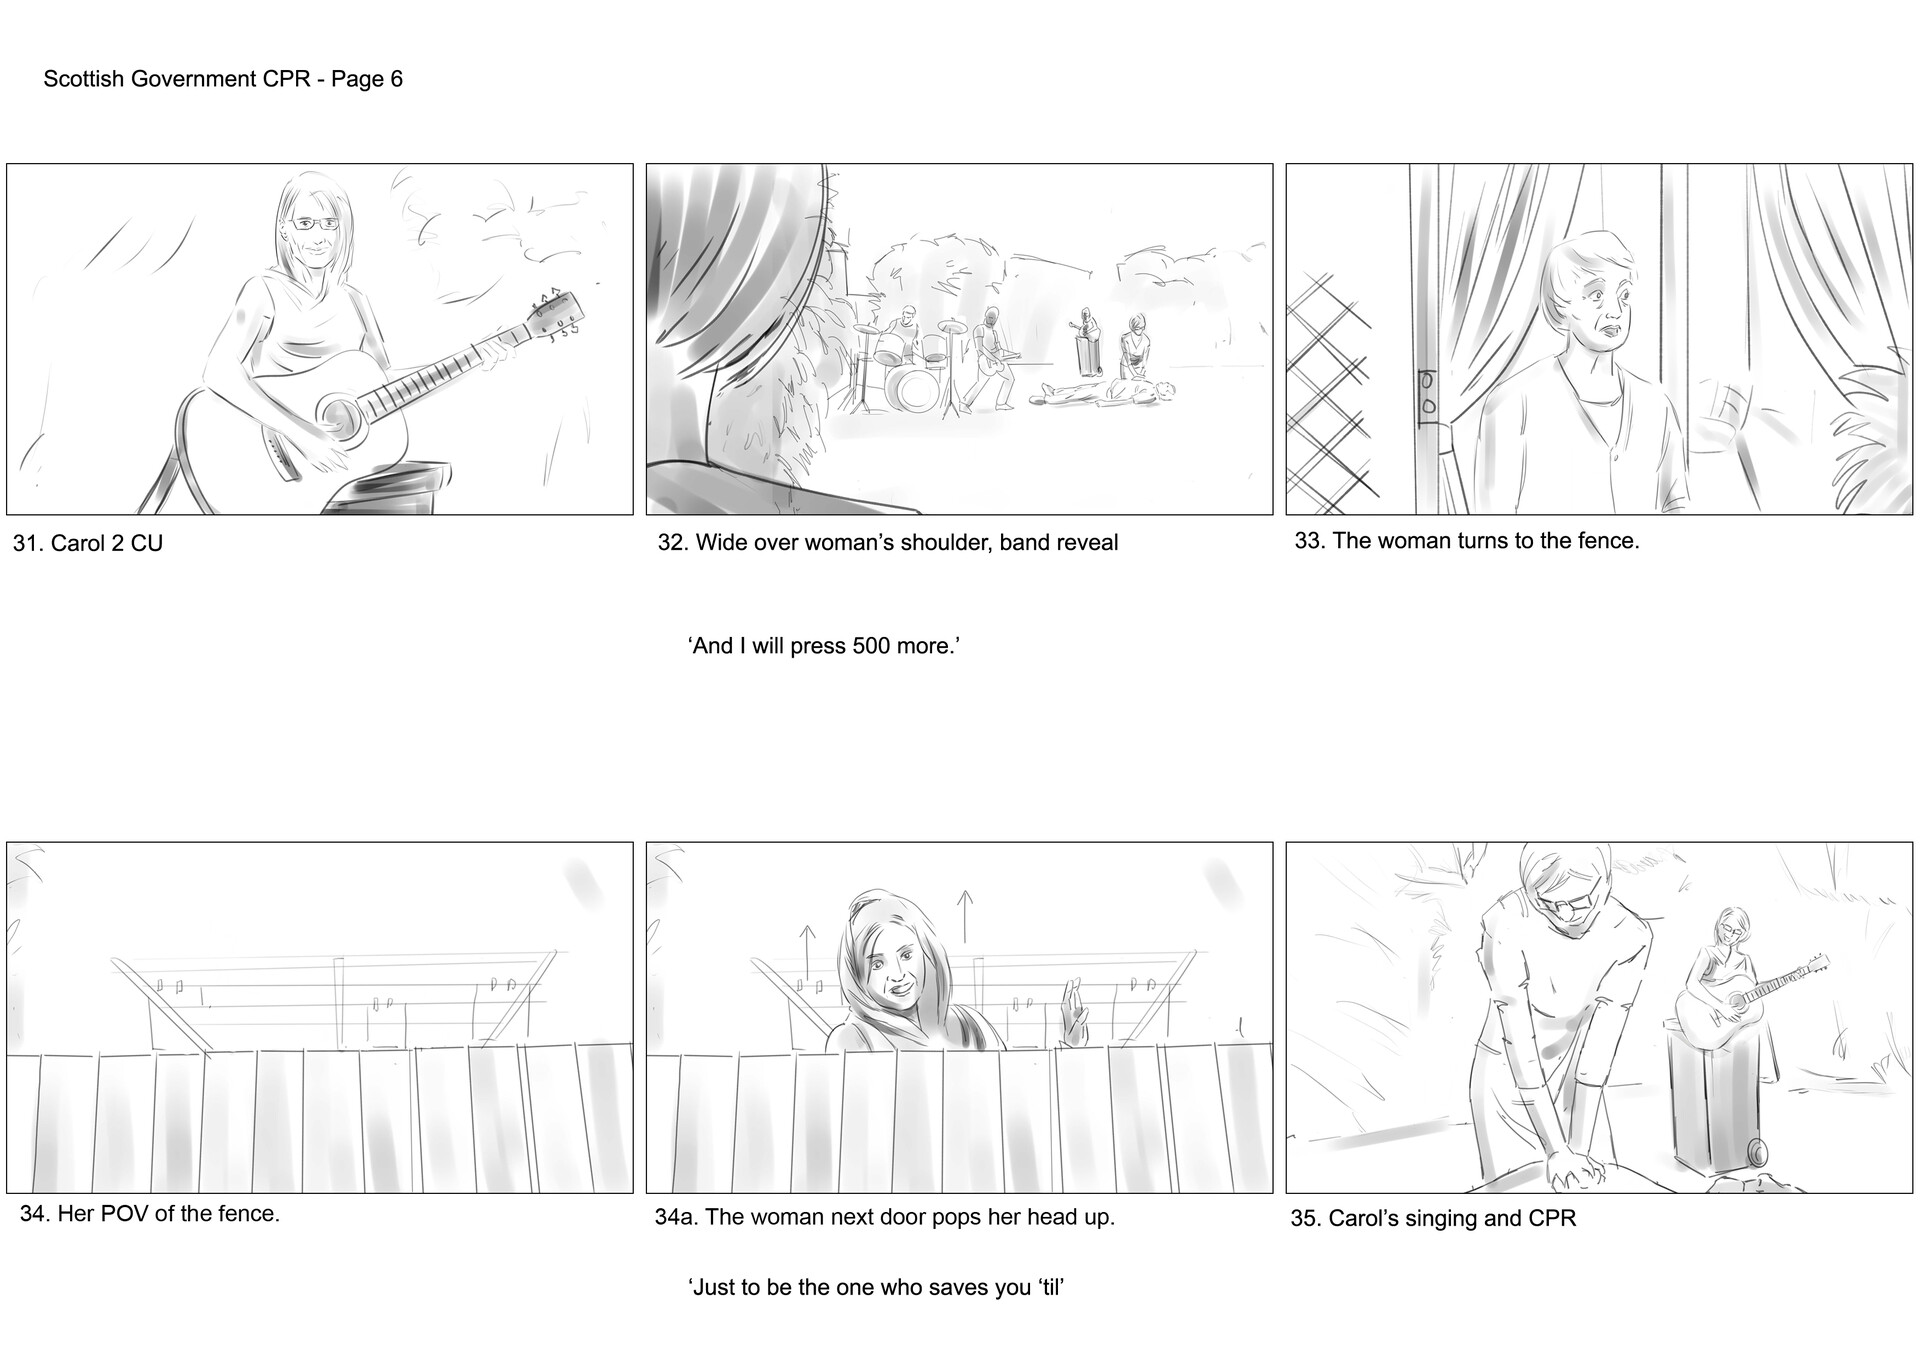 David newbigging save a life for scotland storyboards v2 6